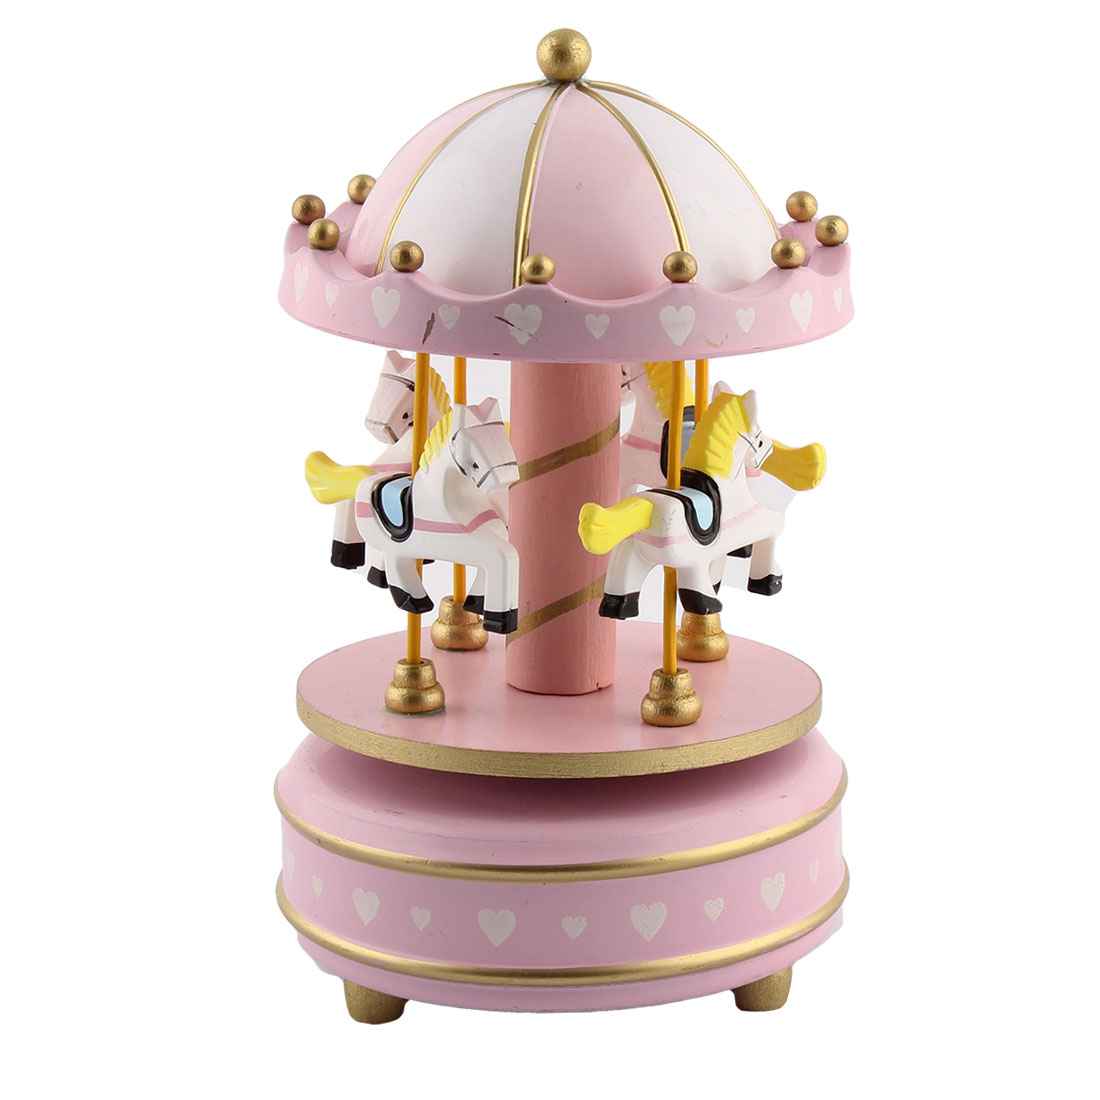 Gift Metal Base Love Printing 4 Horses Merry-Go-Round Carousel Music Box Pink White